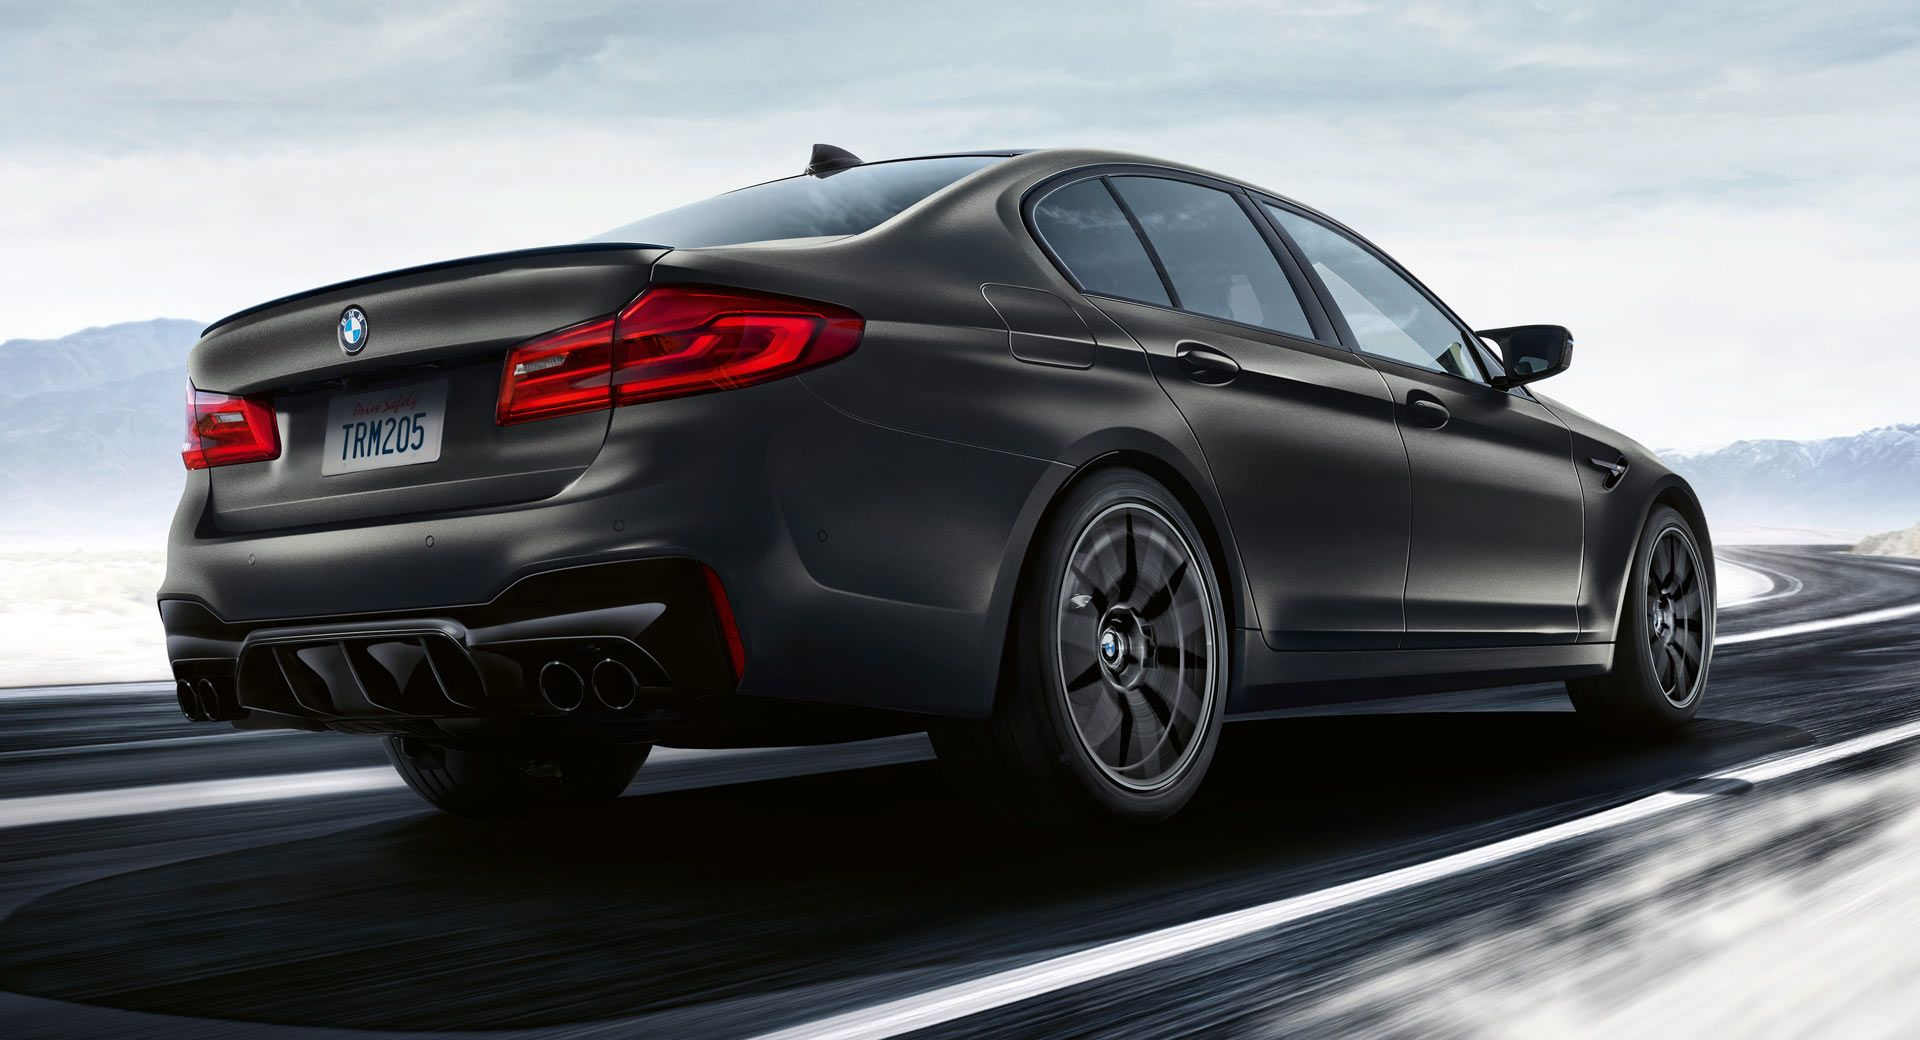 2020 Bmw M5 Edition 35 Years Has A Gold Trimmed Interior 617hp